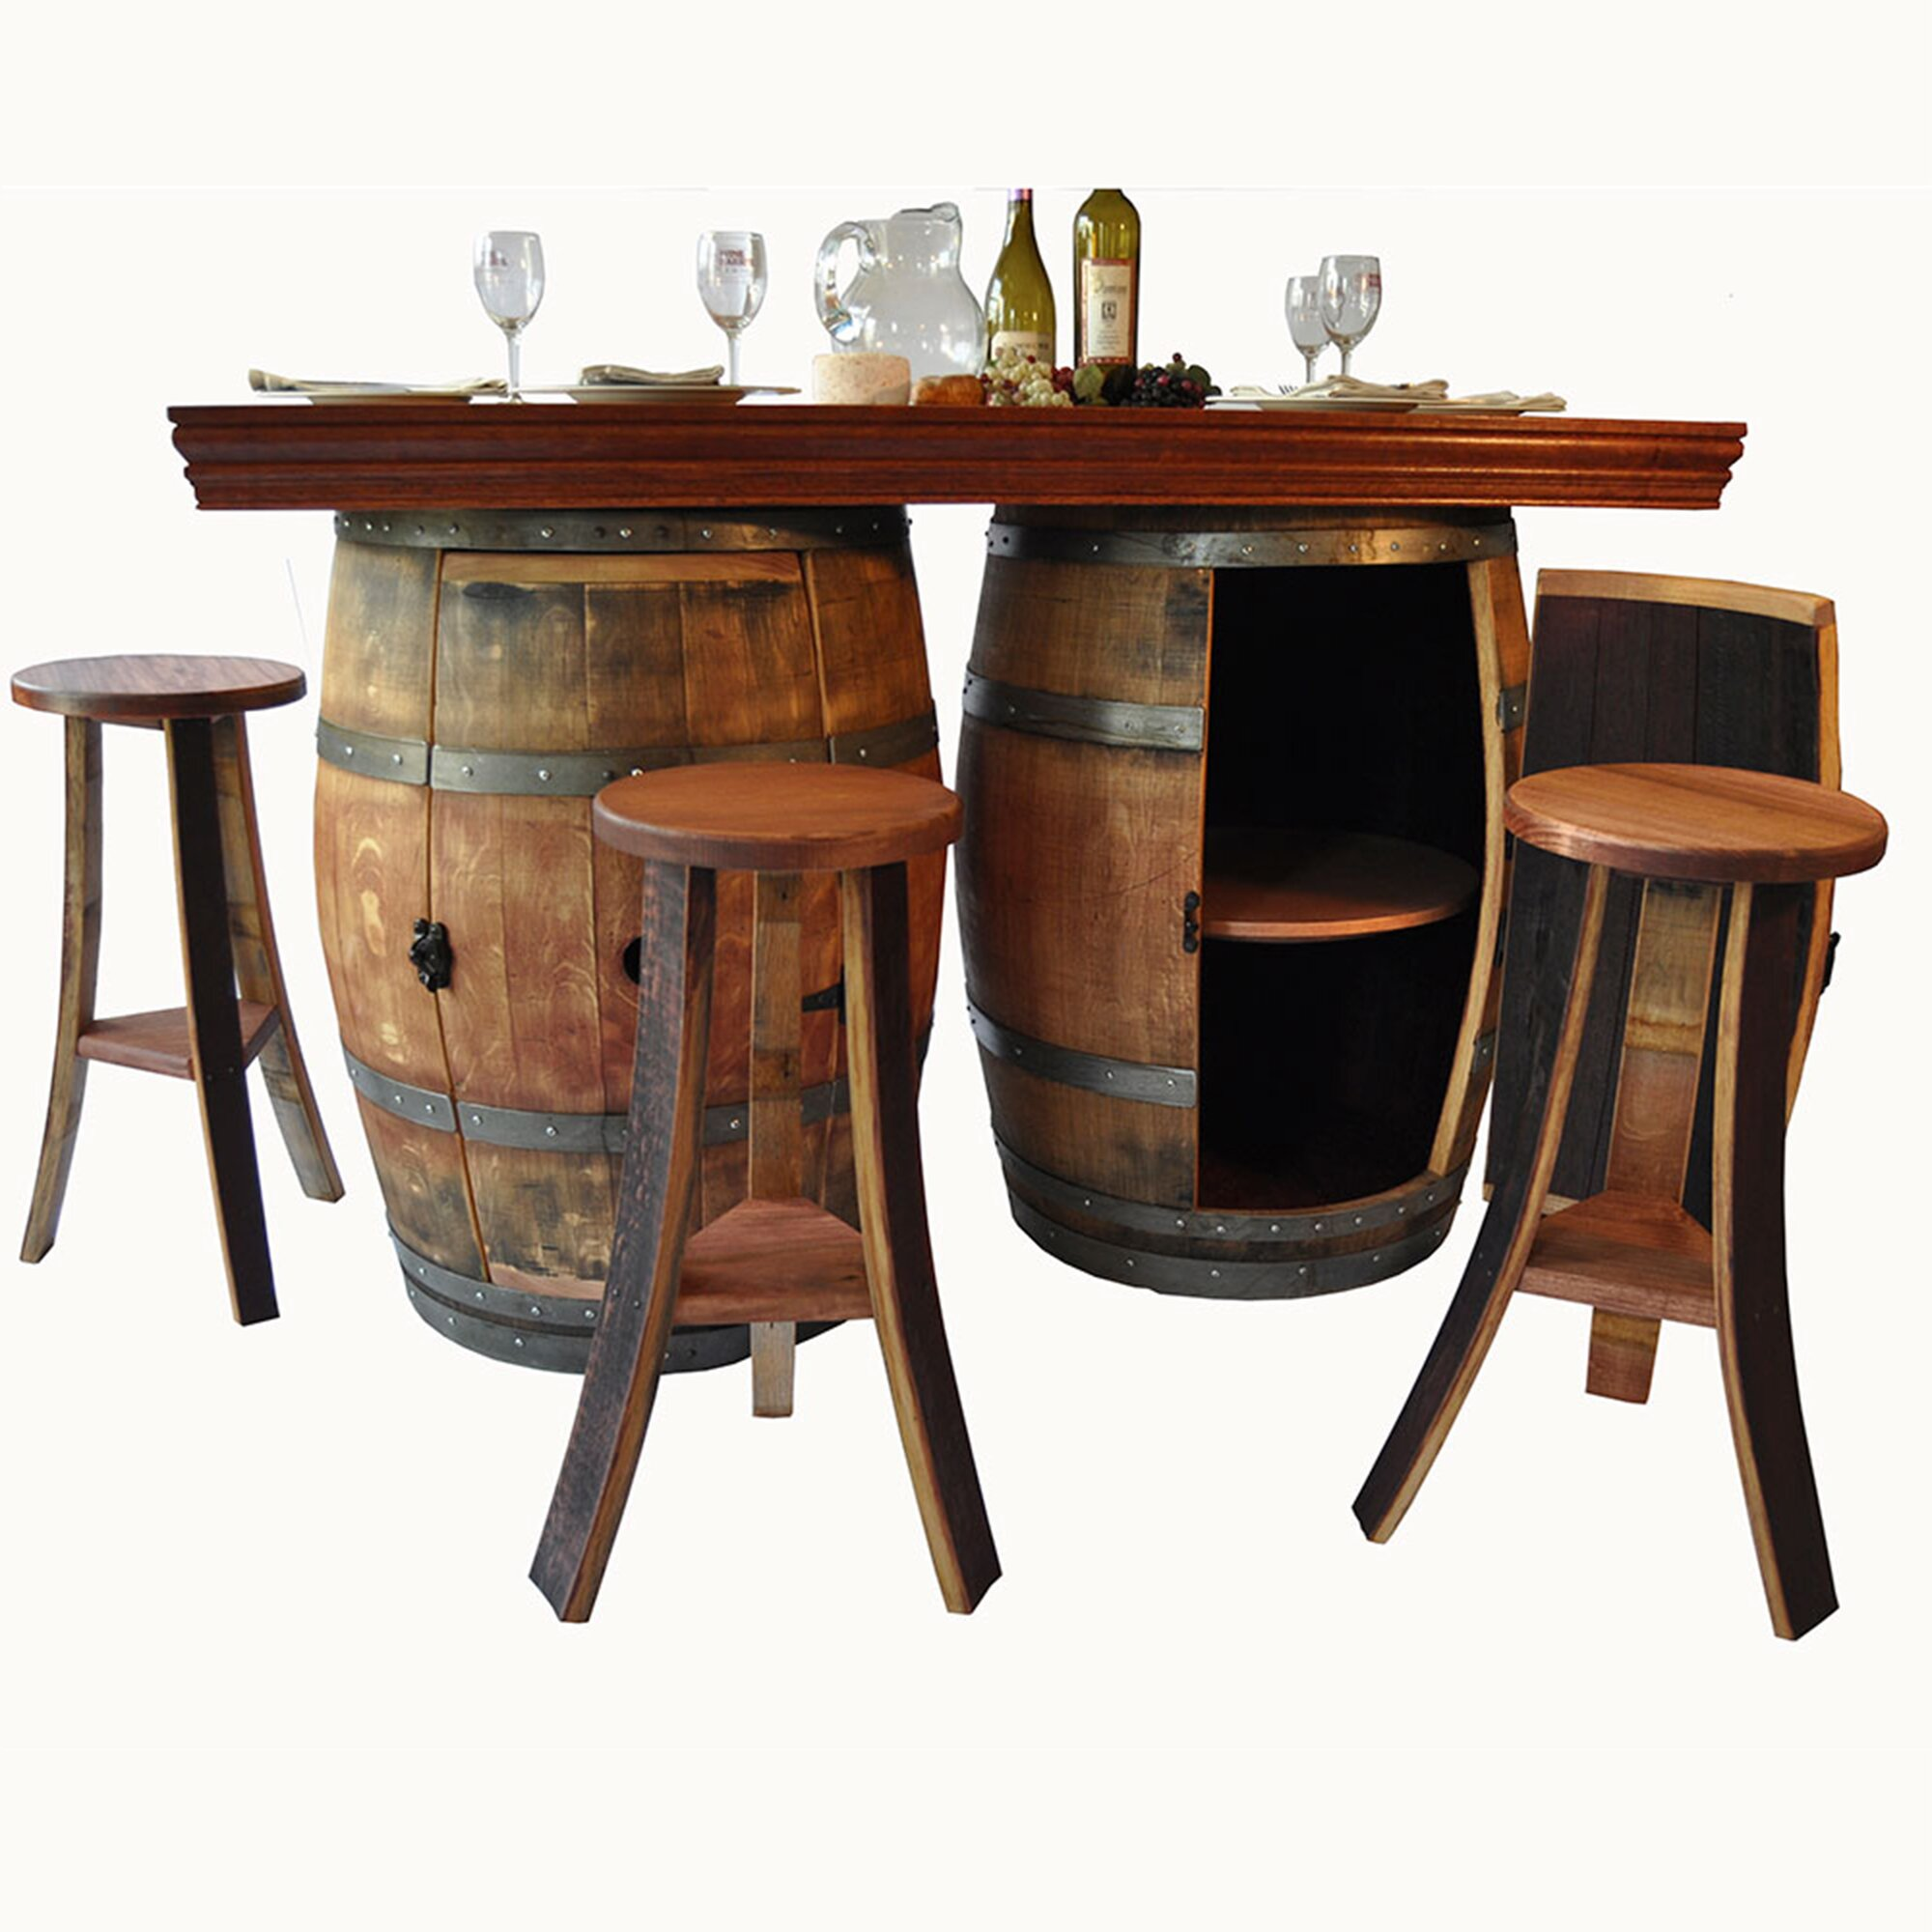 Napa east collection wine barrel 5 piece dining set for 1 2 wine barrel table